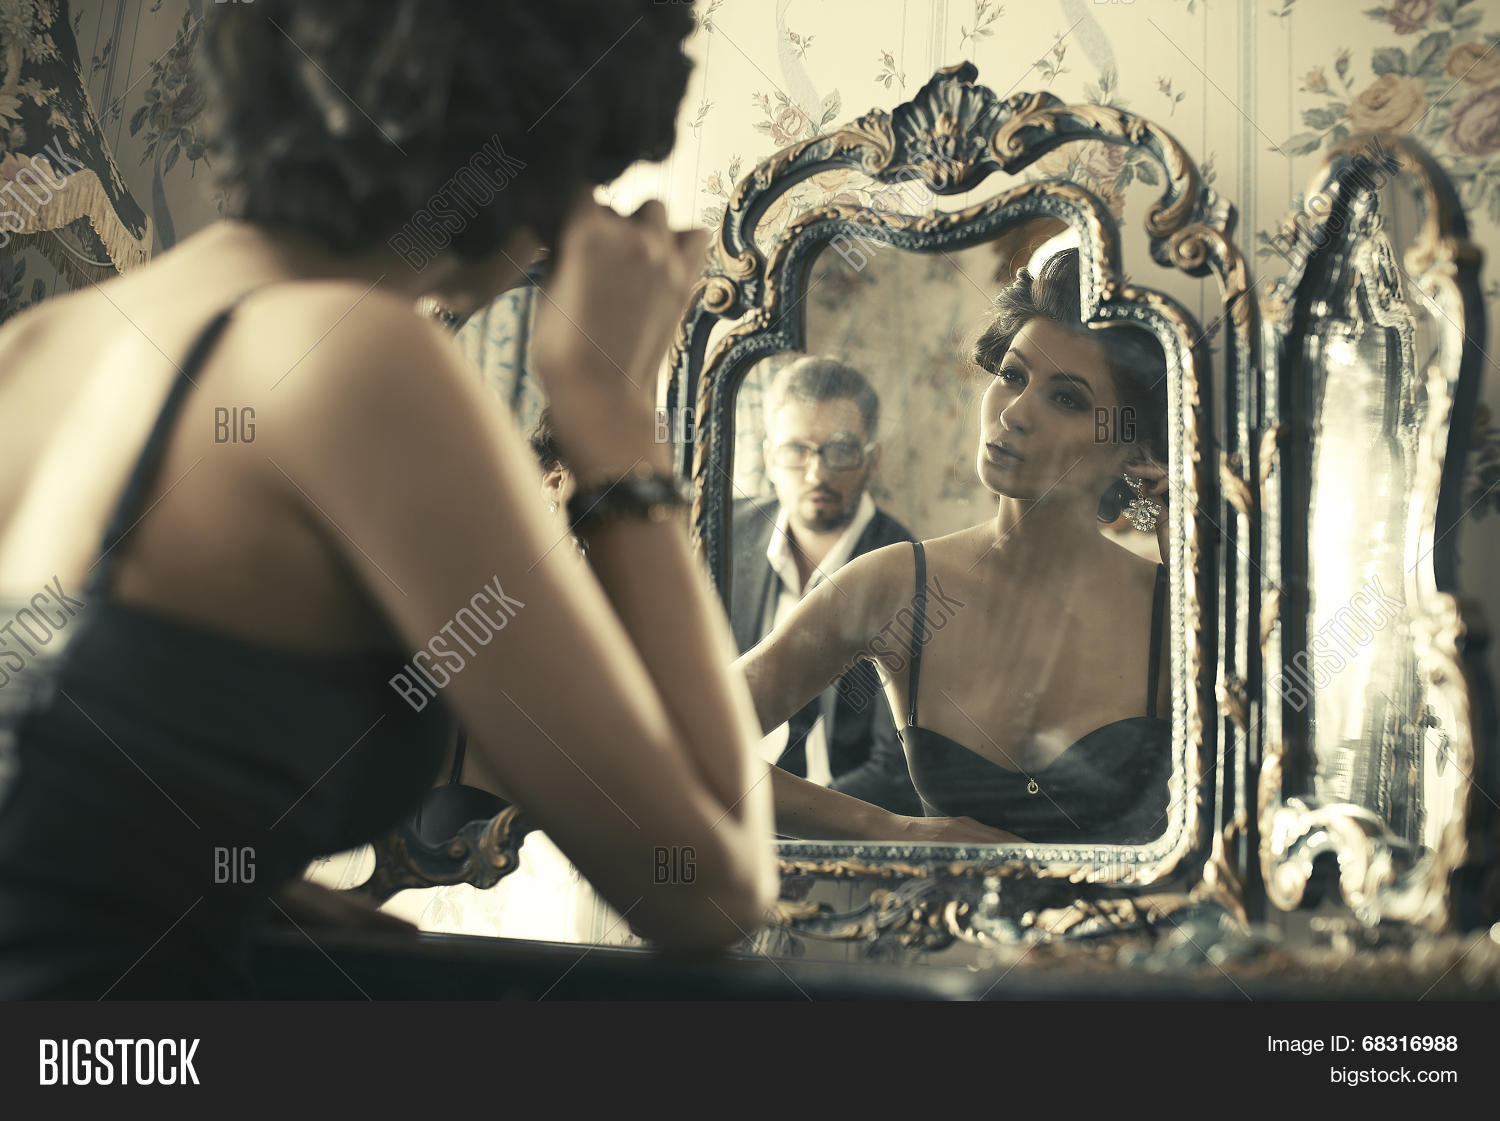 Think, erotic pictures of women looking in mirrors accept. The